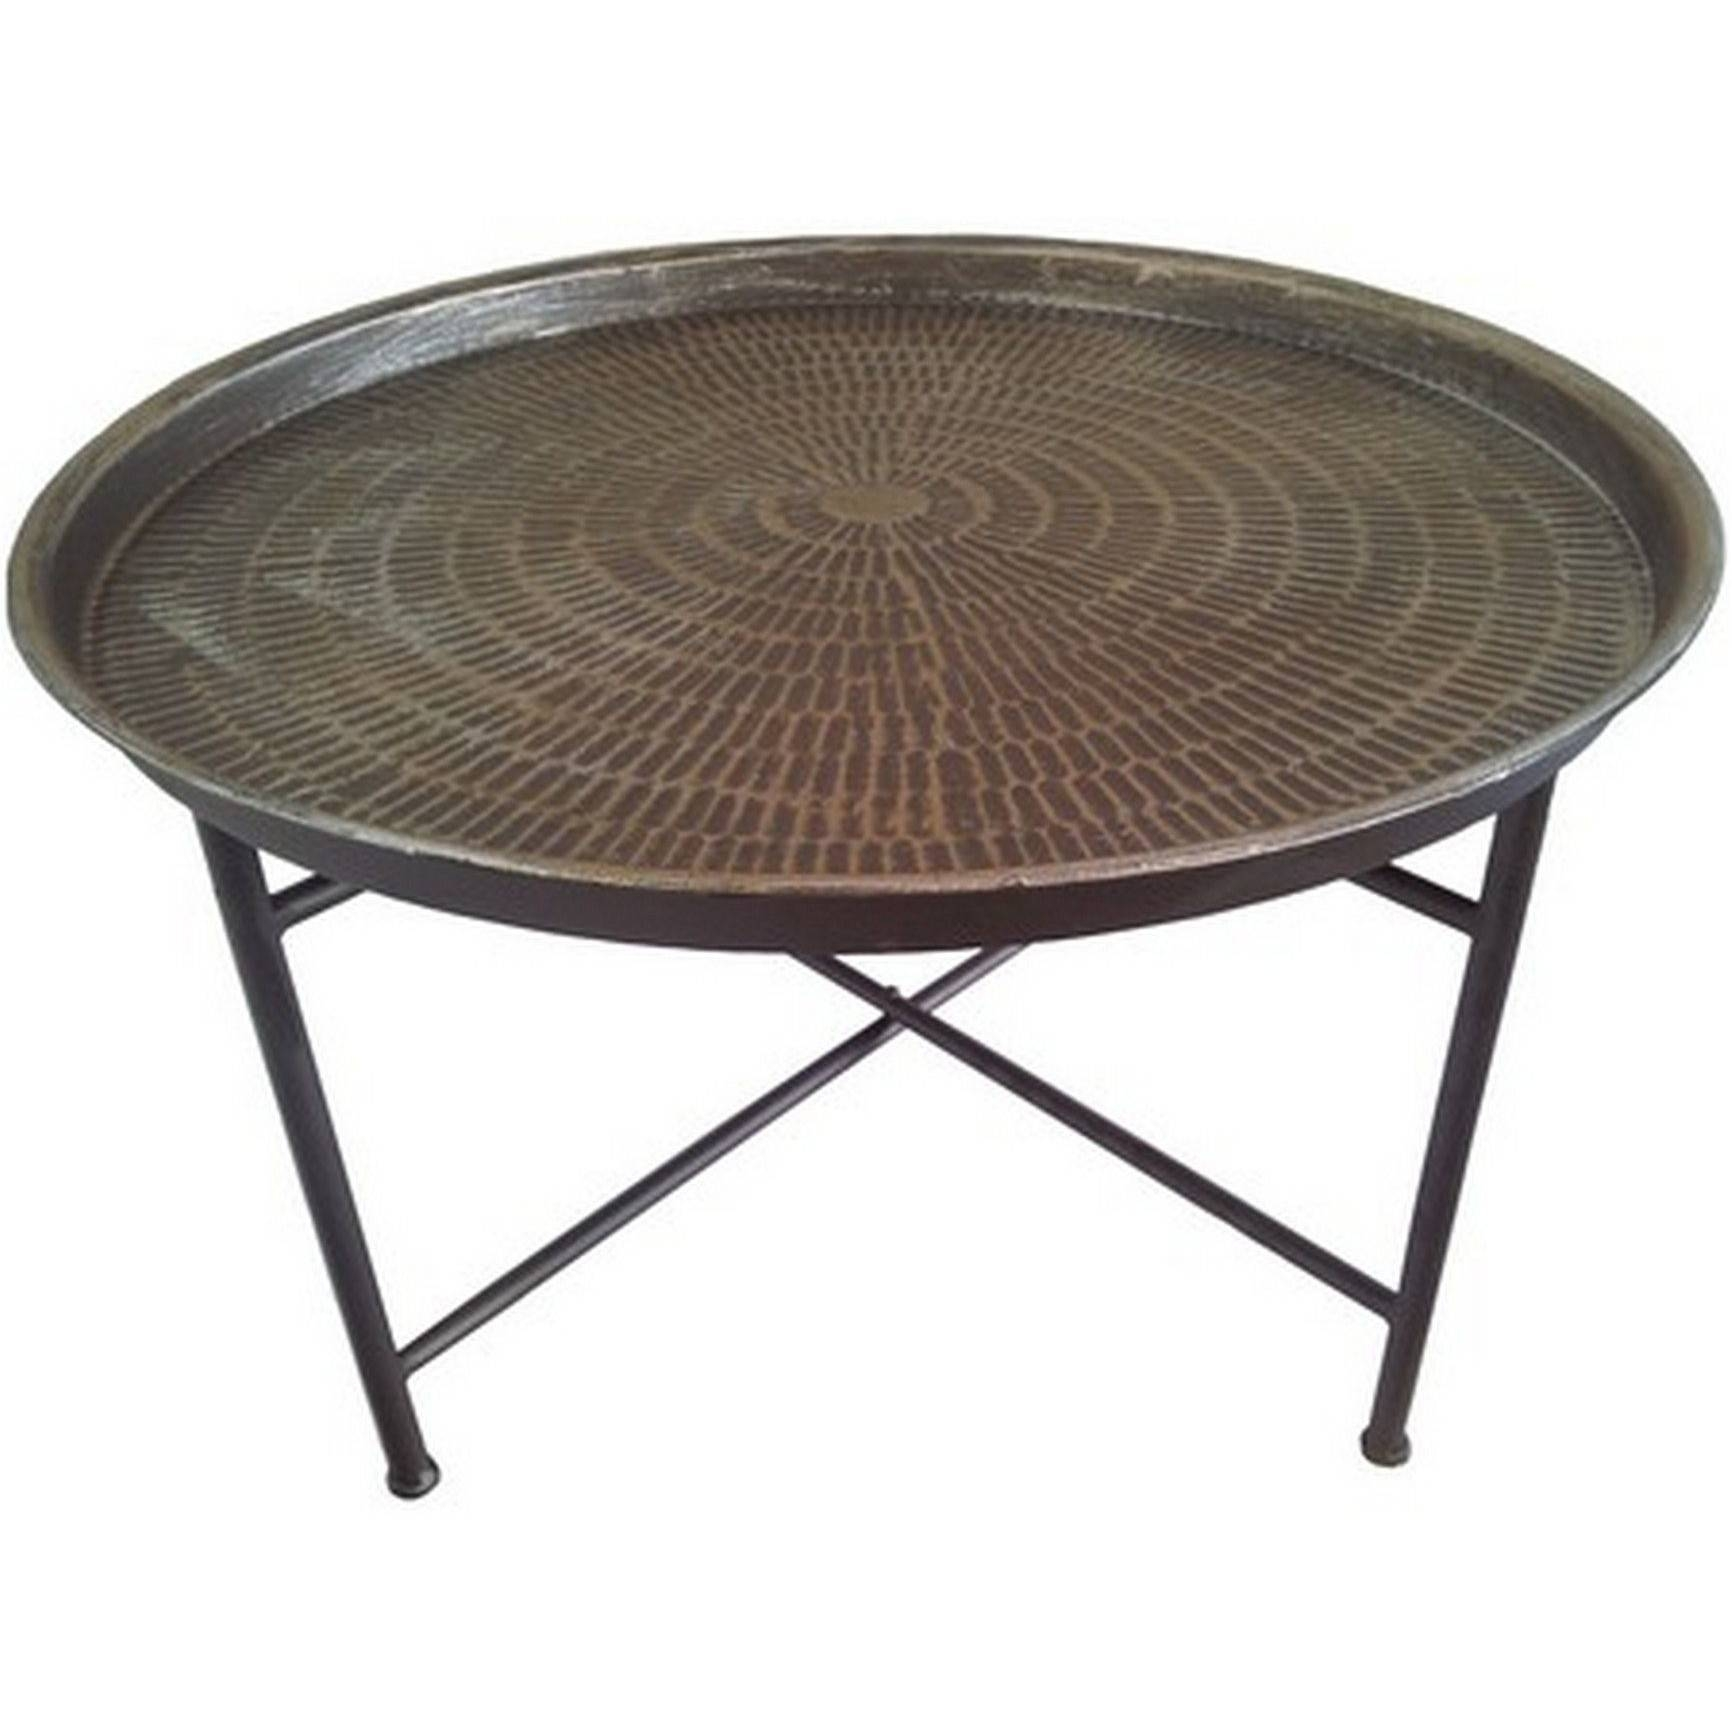 Bali Hammered Metal Round Coffee Table - Cotterell & Co. Online intended for Metal Coffee Tables (Image 3 of 30)